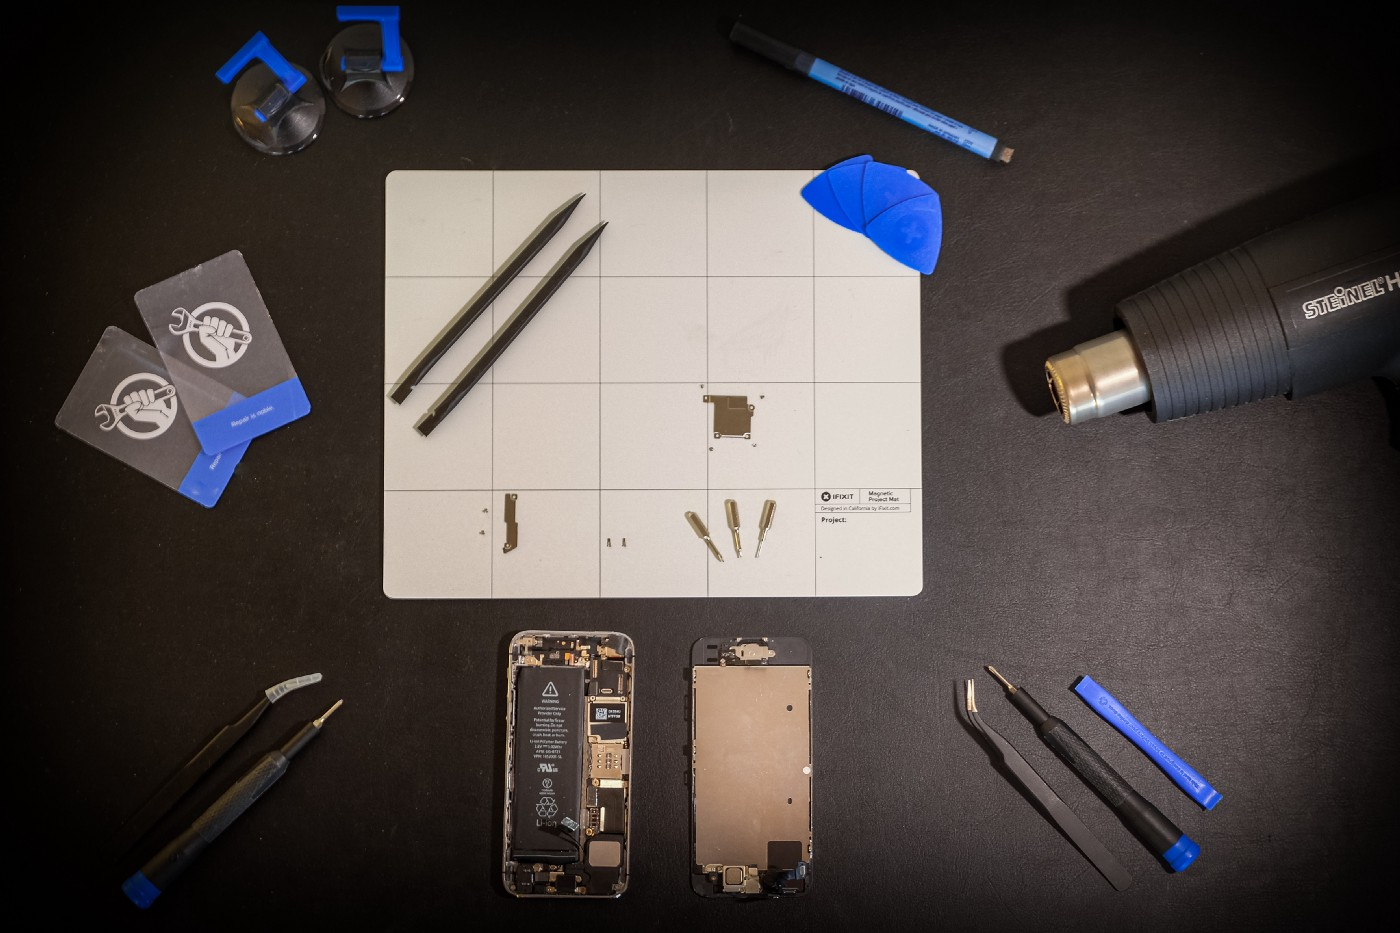 A disassembled smartphone and several tools sitting on a table